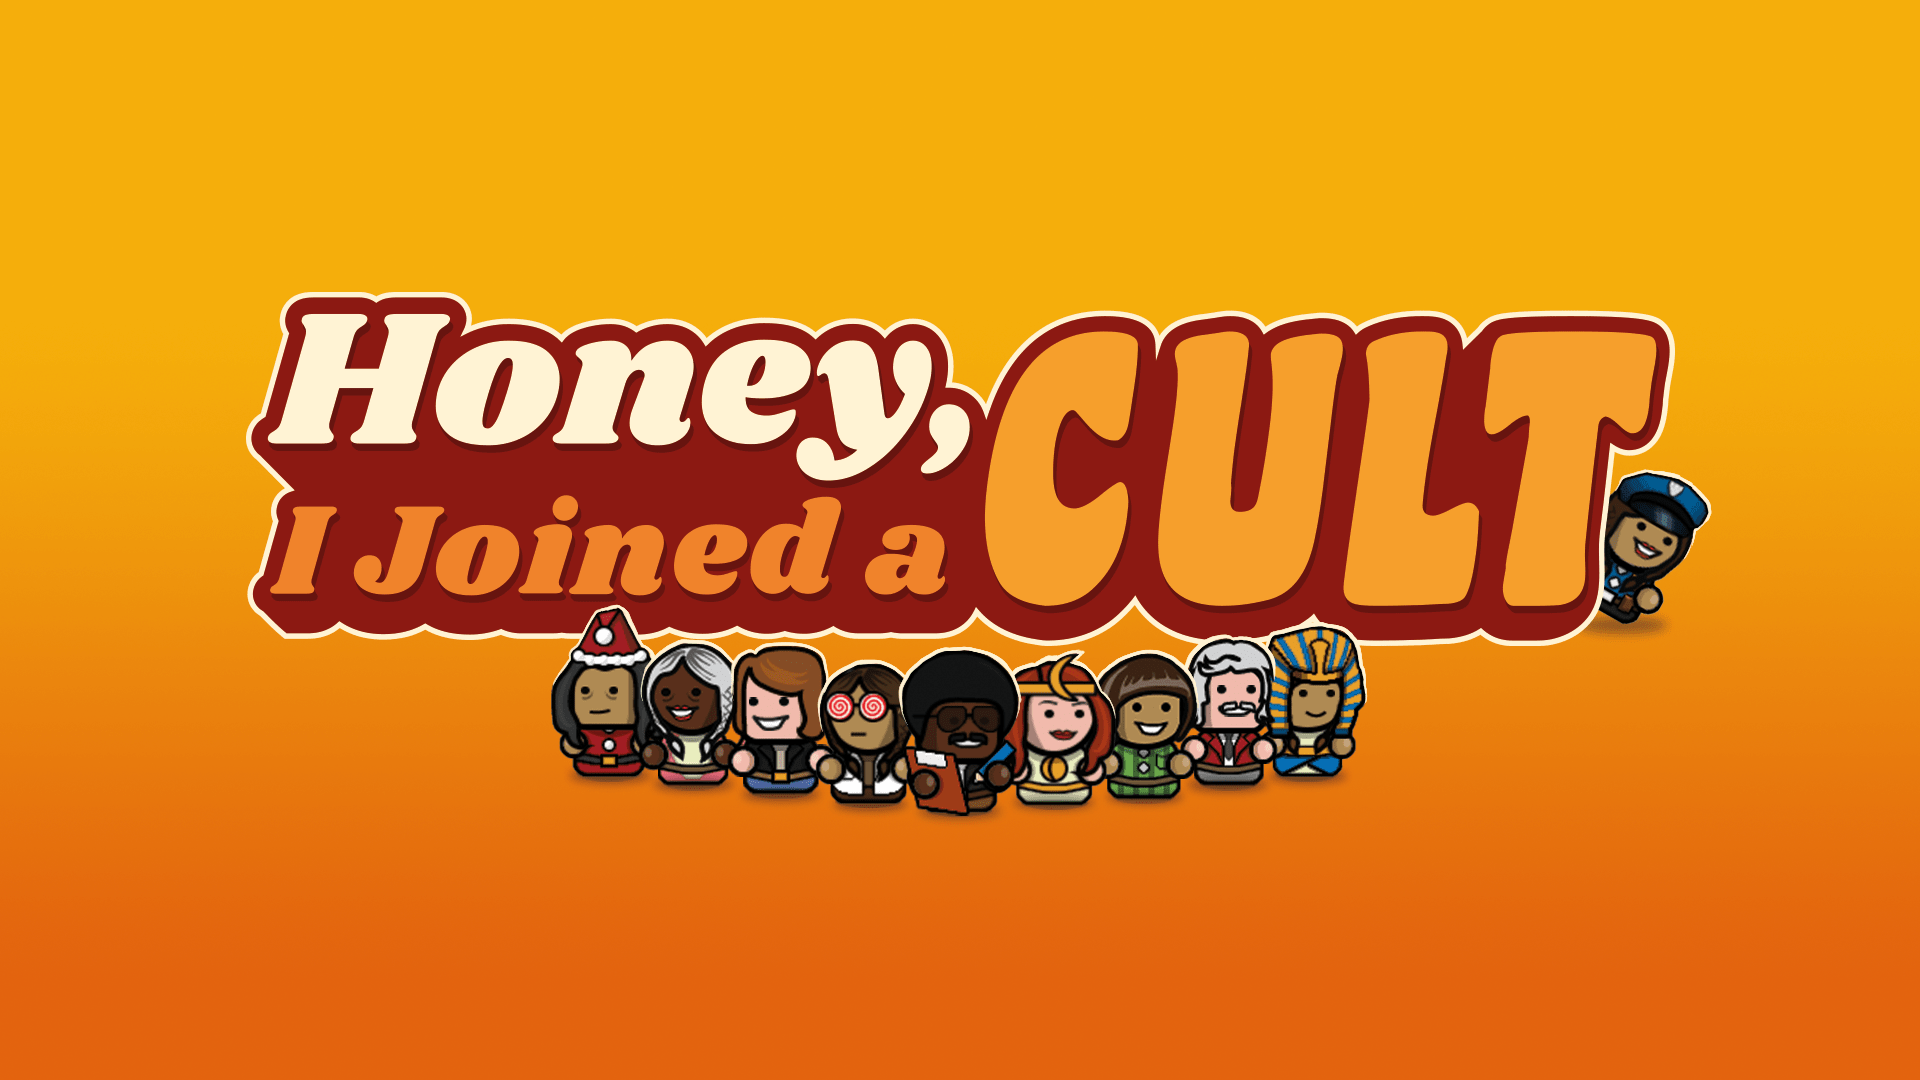 Honey, I Joined a Cult!